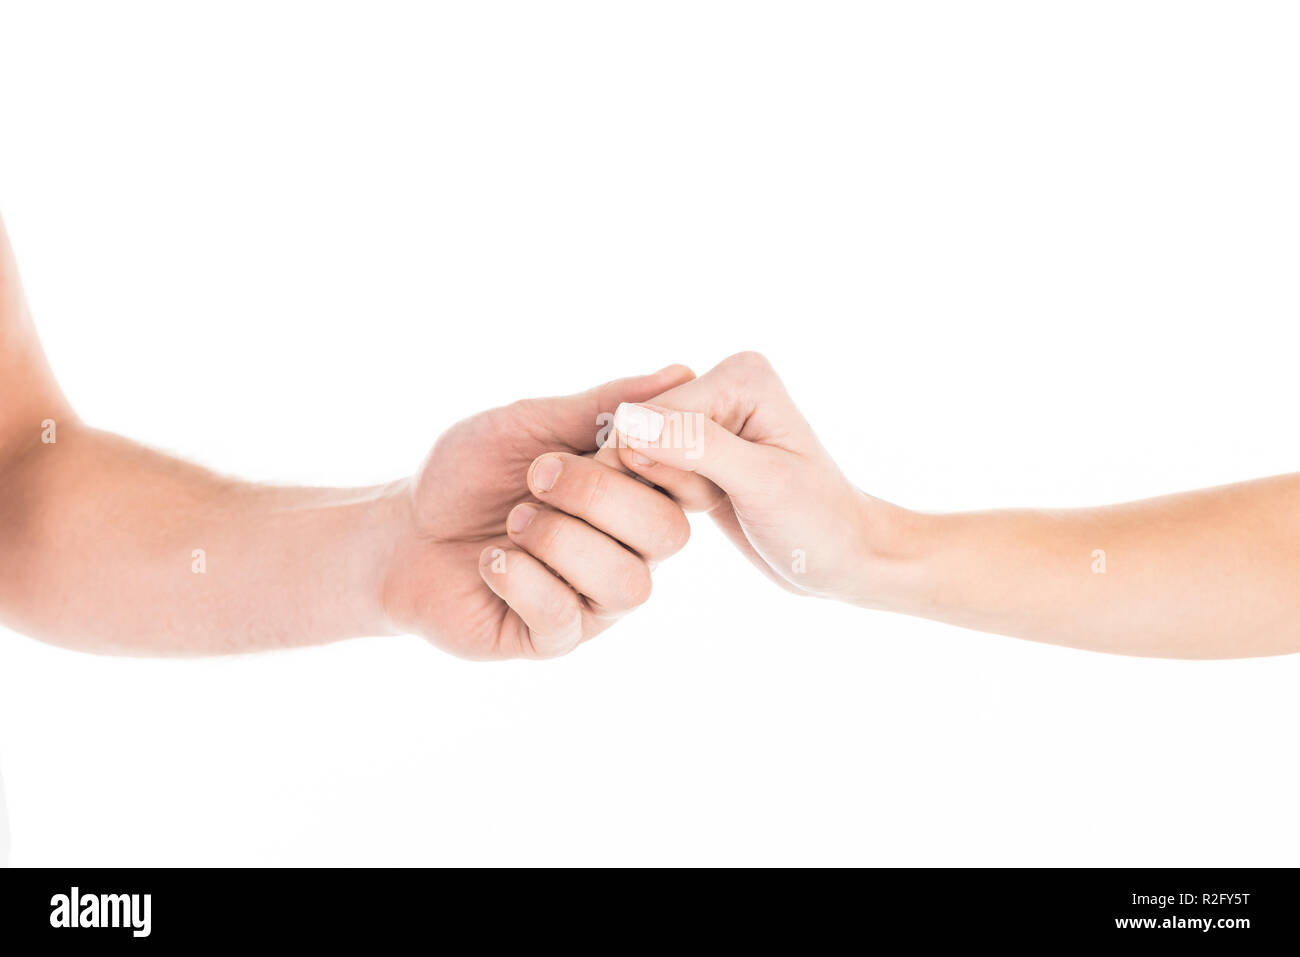 Partial view of people tenderly holding hands isolated on white - Stock Image